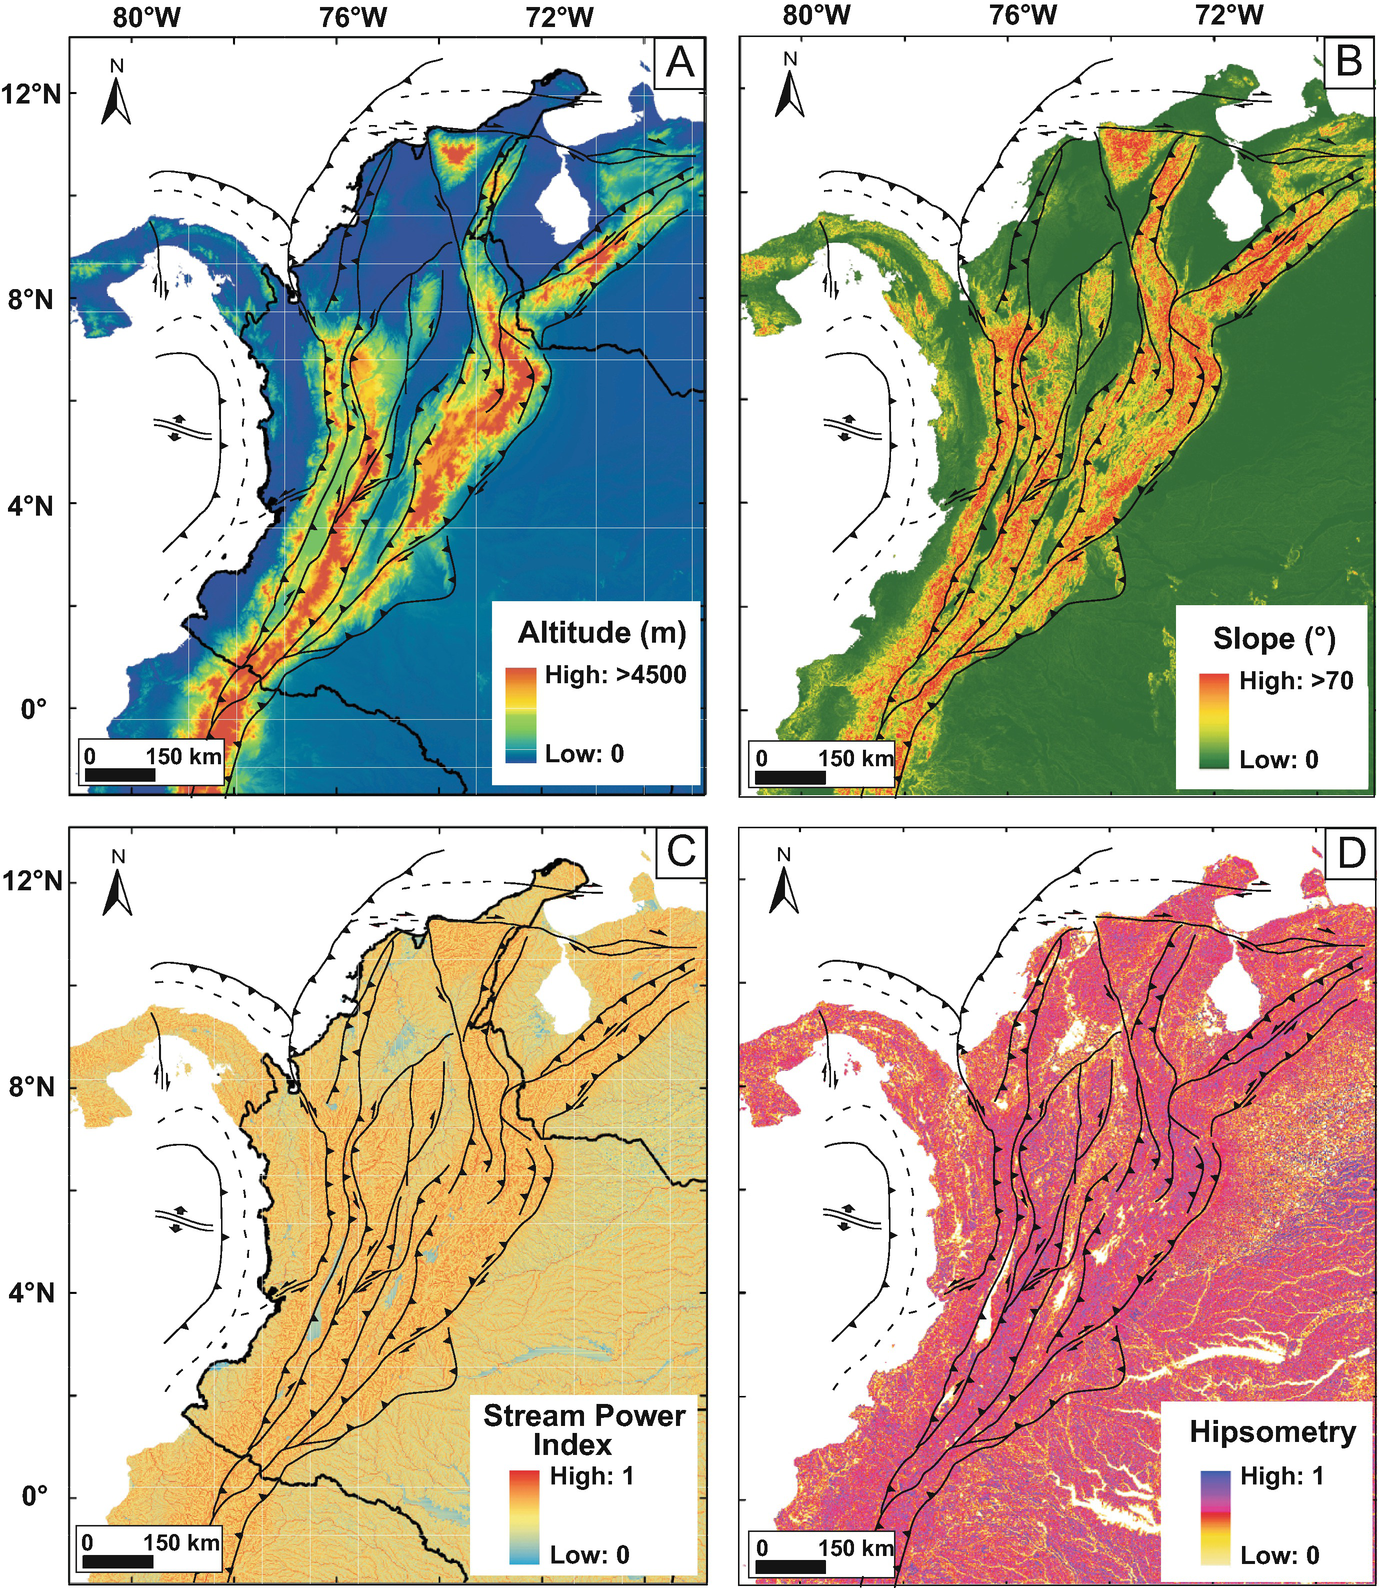 Morphotectonic And Orogenic Development Of The Northern